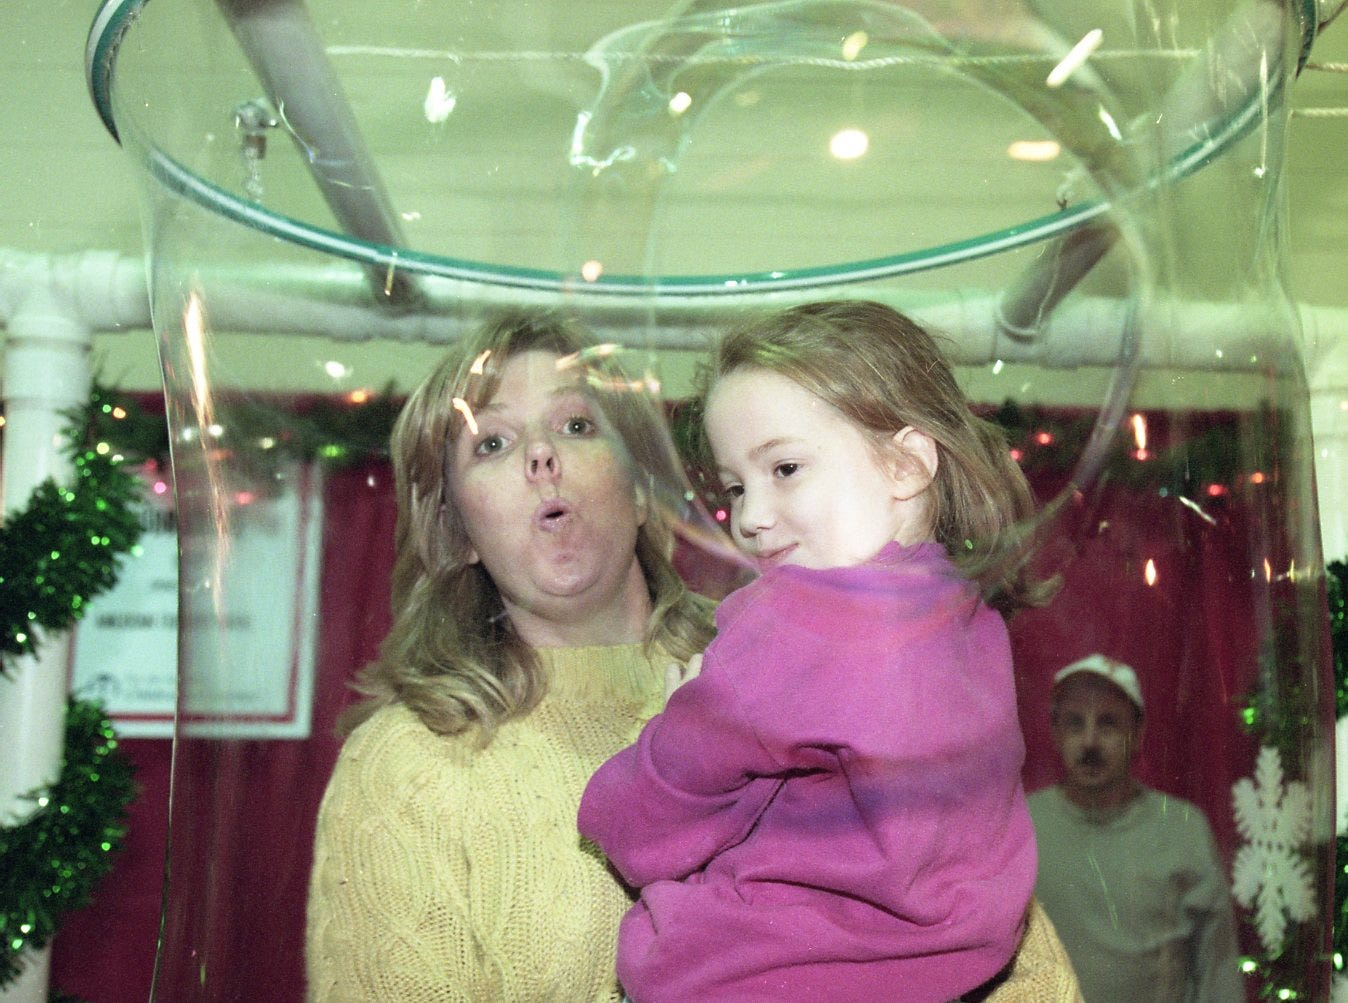 Susan and Samantha Calabrese blow a hole in a large bubble while at Fantasy of Trees, November, 1998.